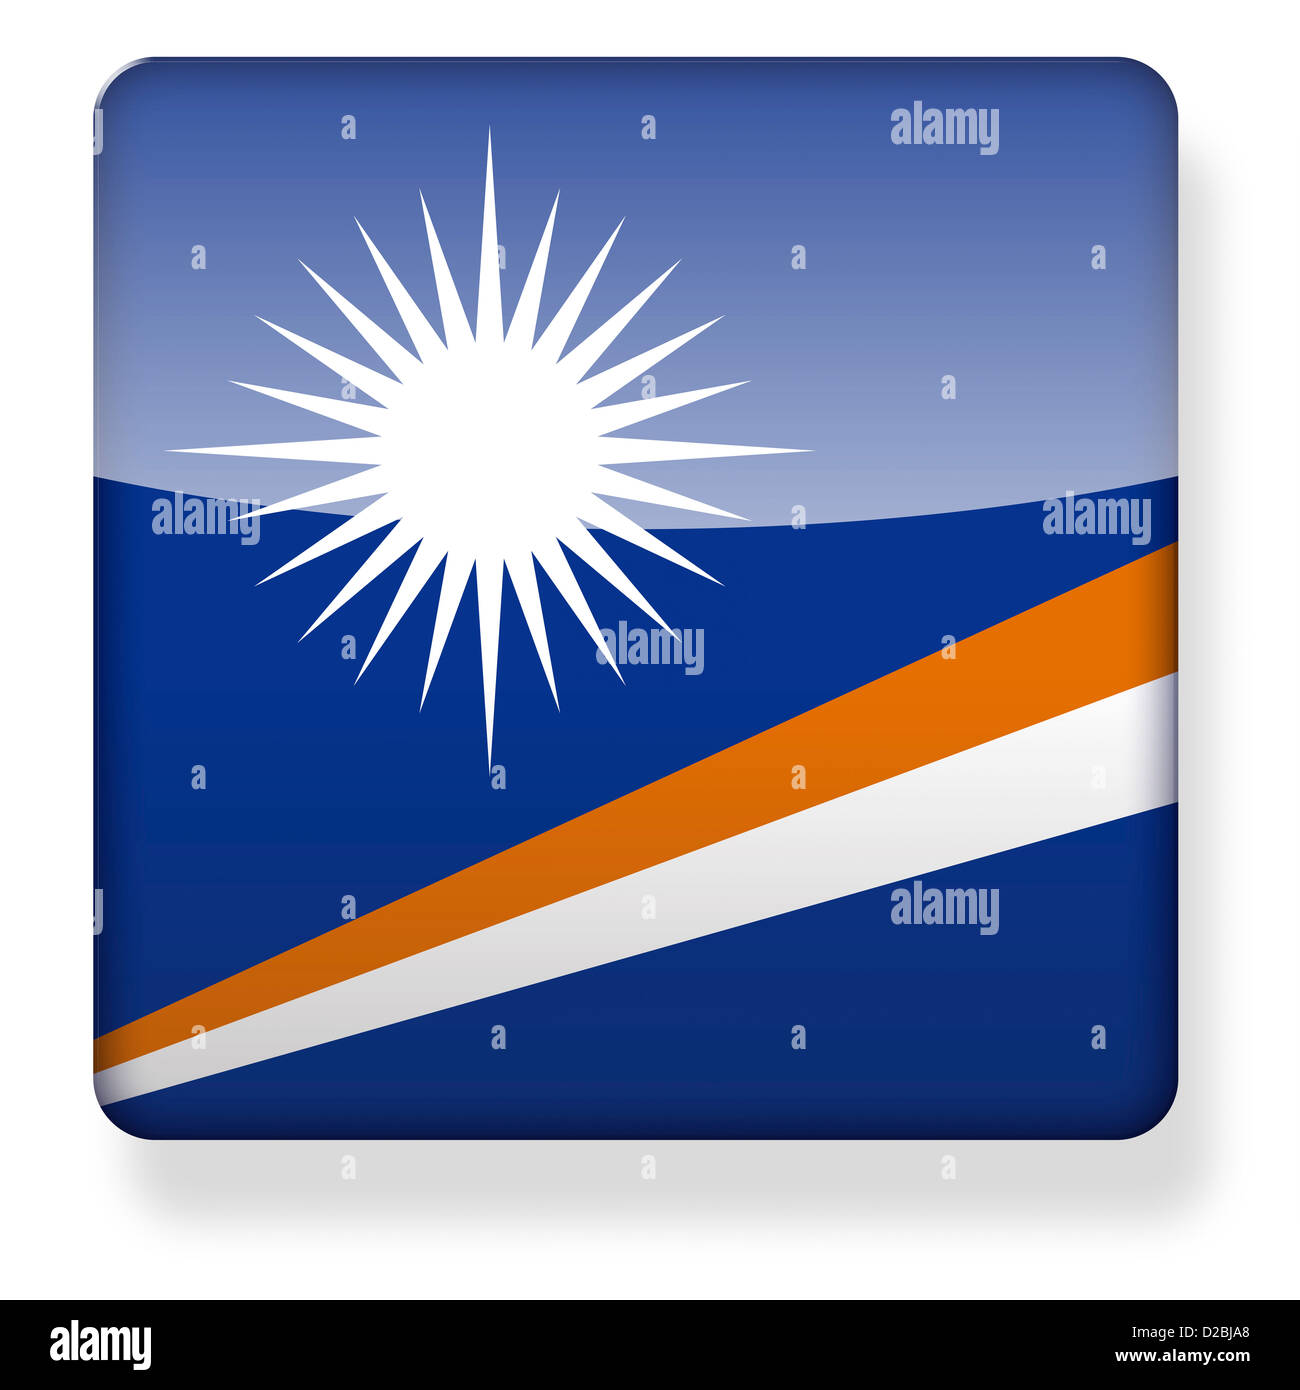 Marshall Islands flag as an app icon. Clipping path included. - Stock Image